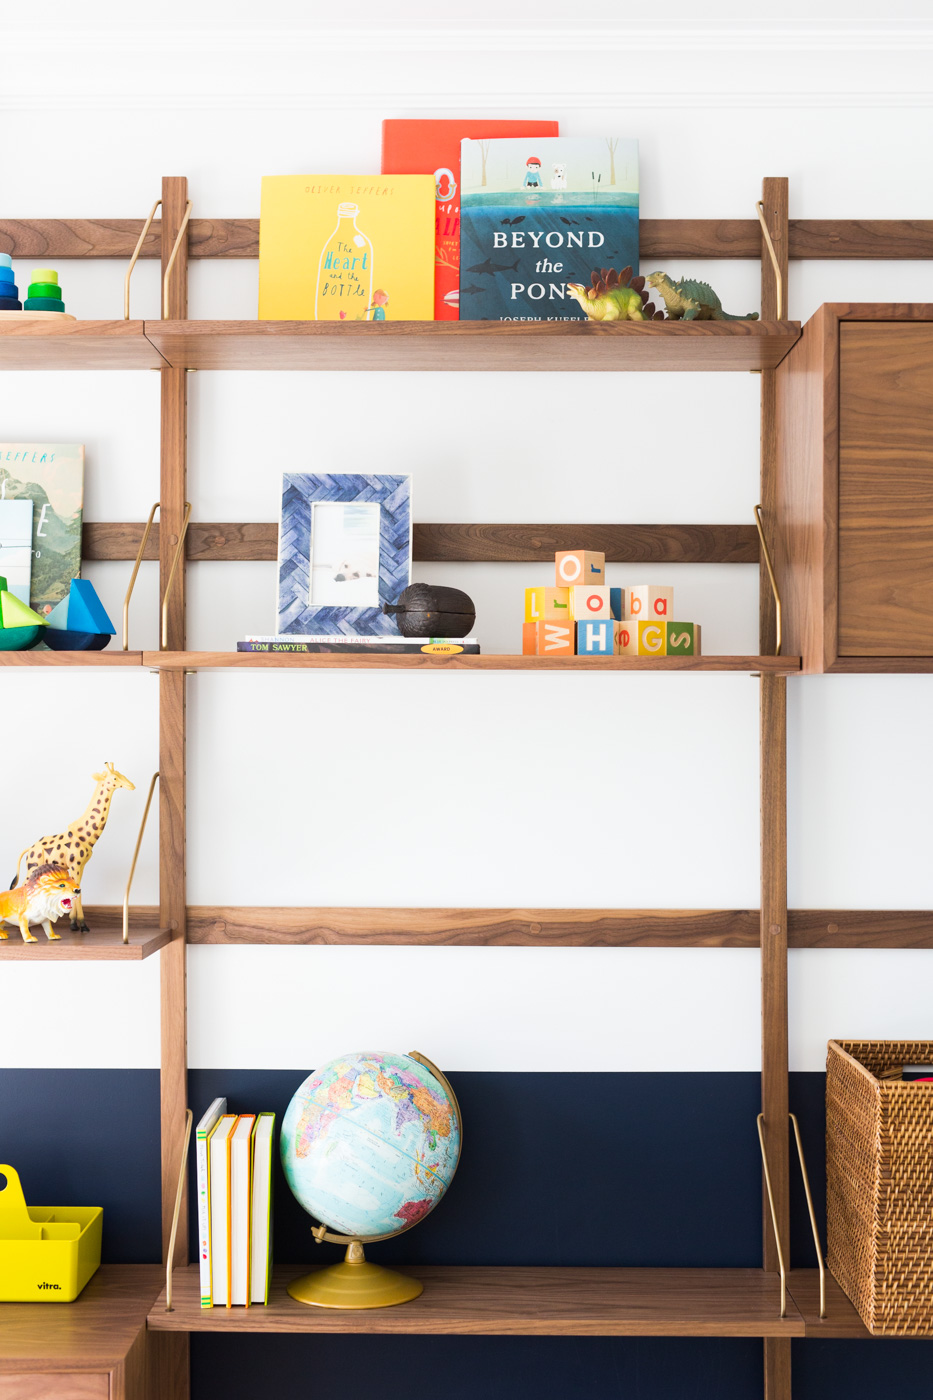 Decorative details in child's shelves